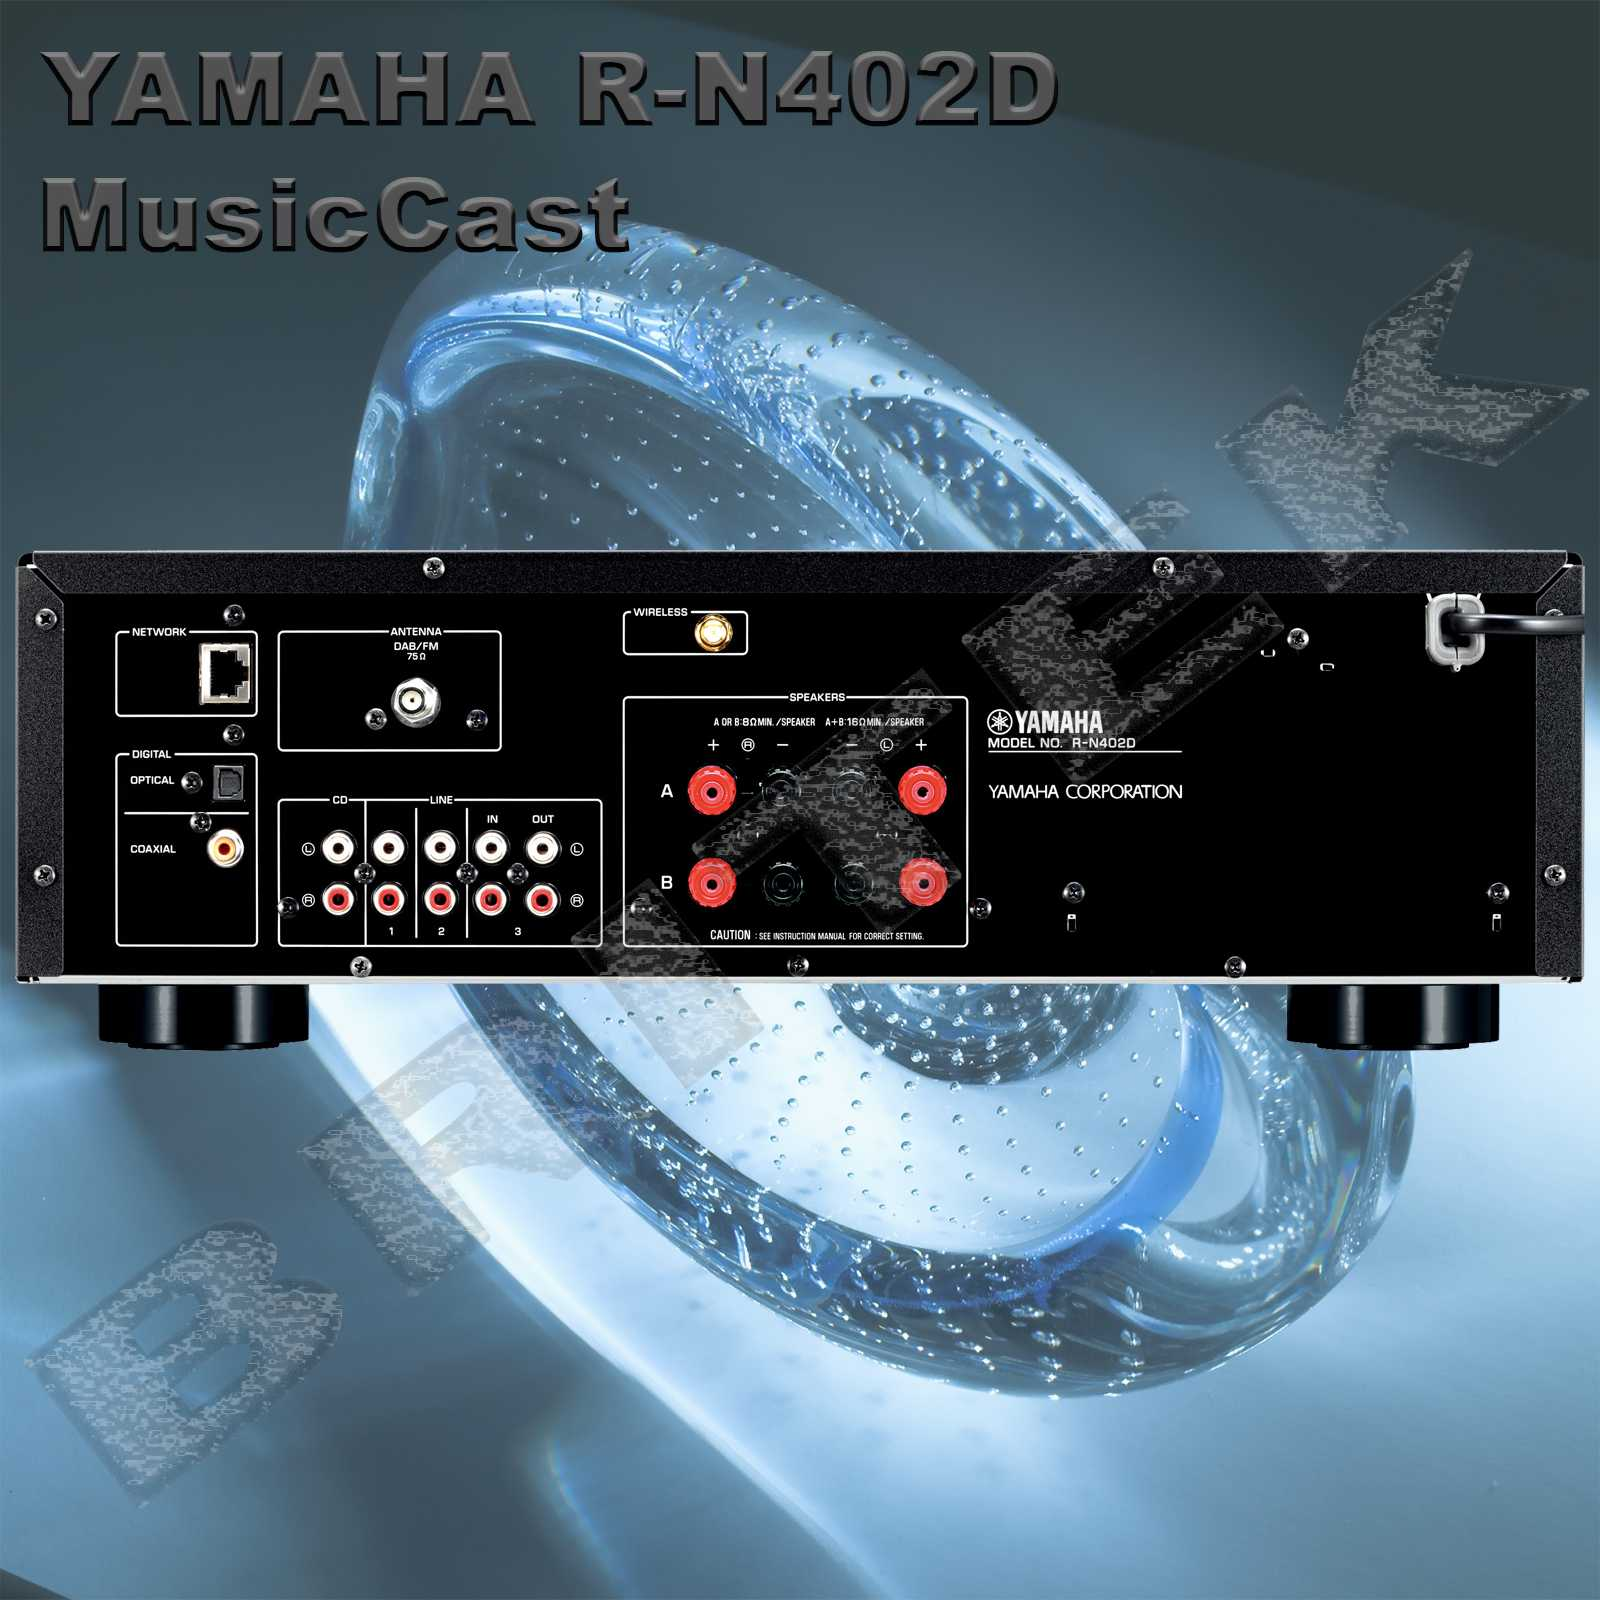 yamaha r n402d s ov stereo receiver. Black Bedroom Furniture Sets. Home Design Ideas